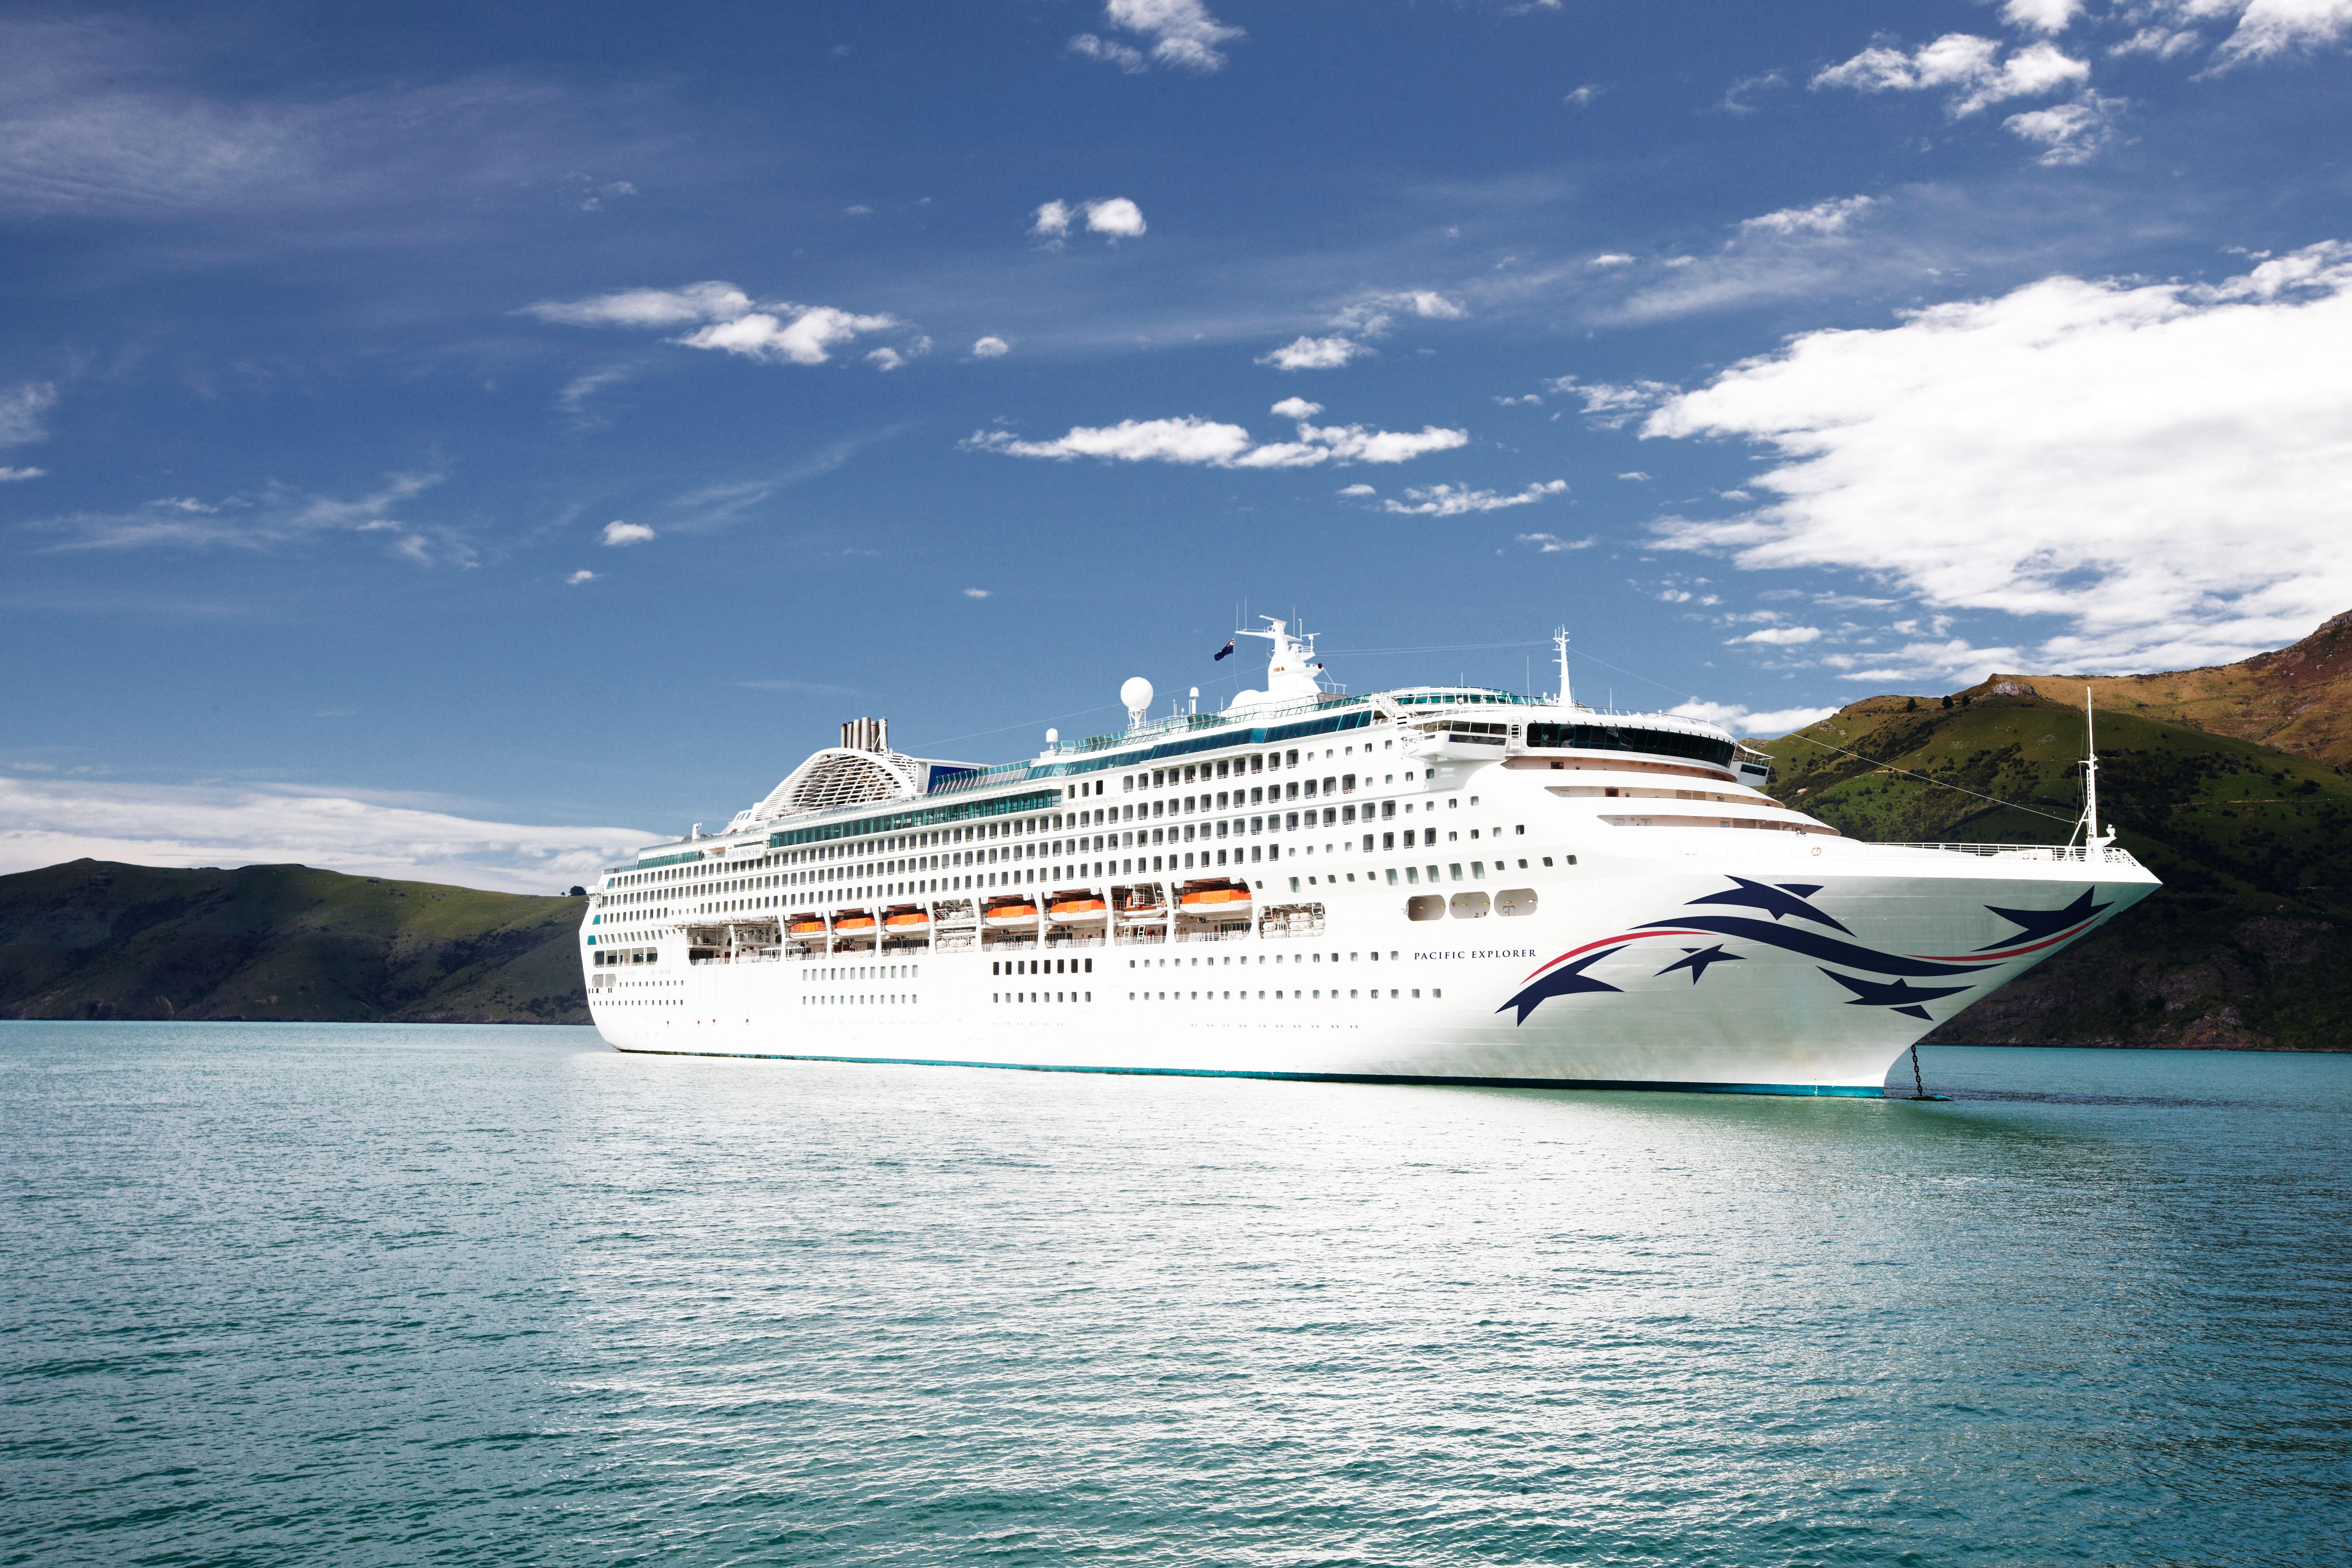 PO Australia Pacific Explorer Cruise Ship Reviews UPDATED - Cruise ship anal